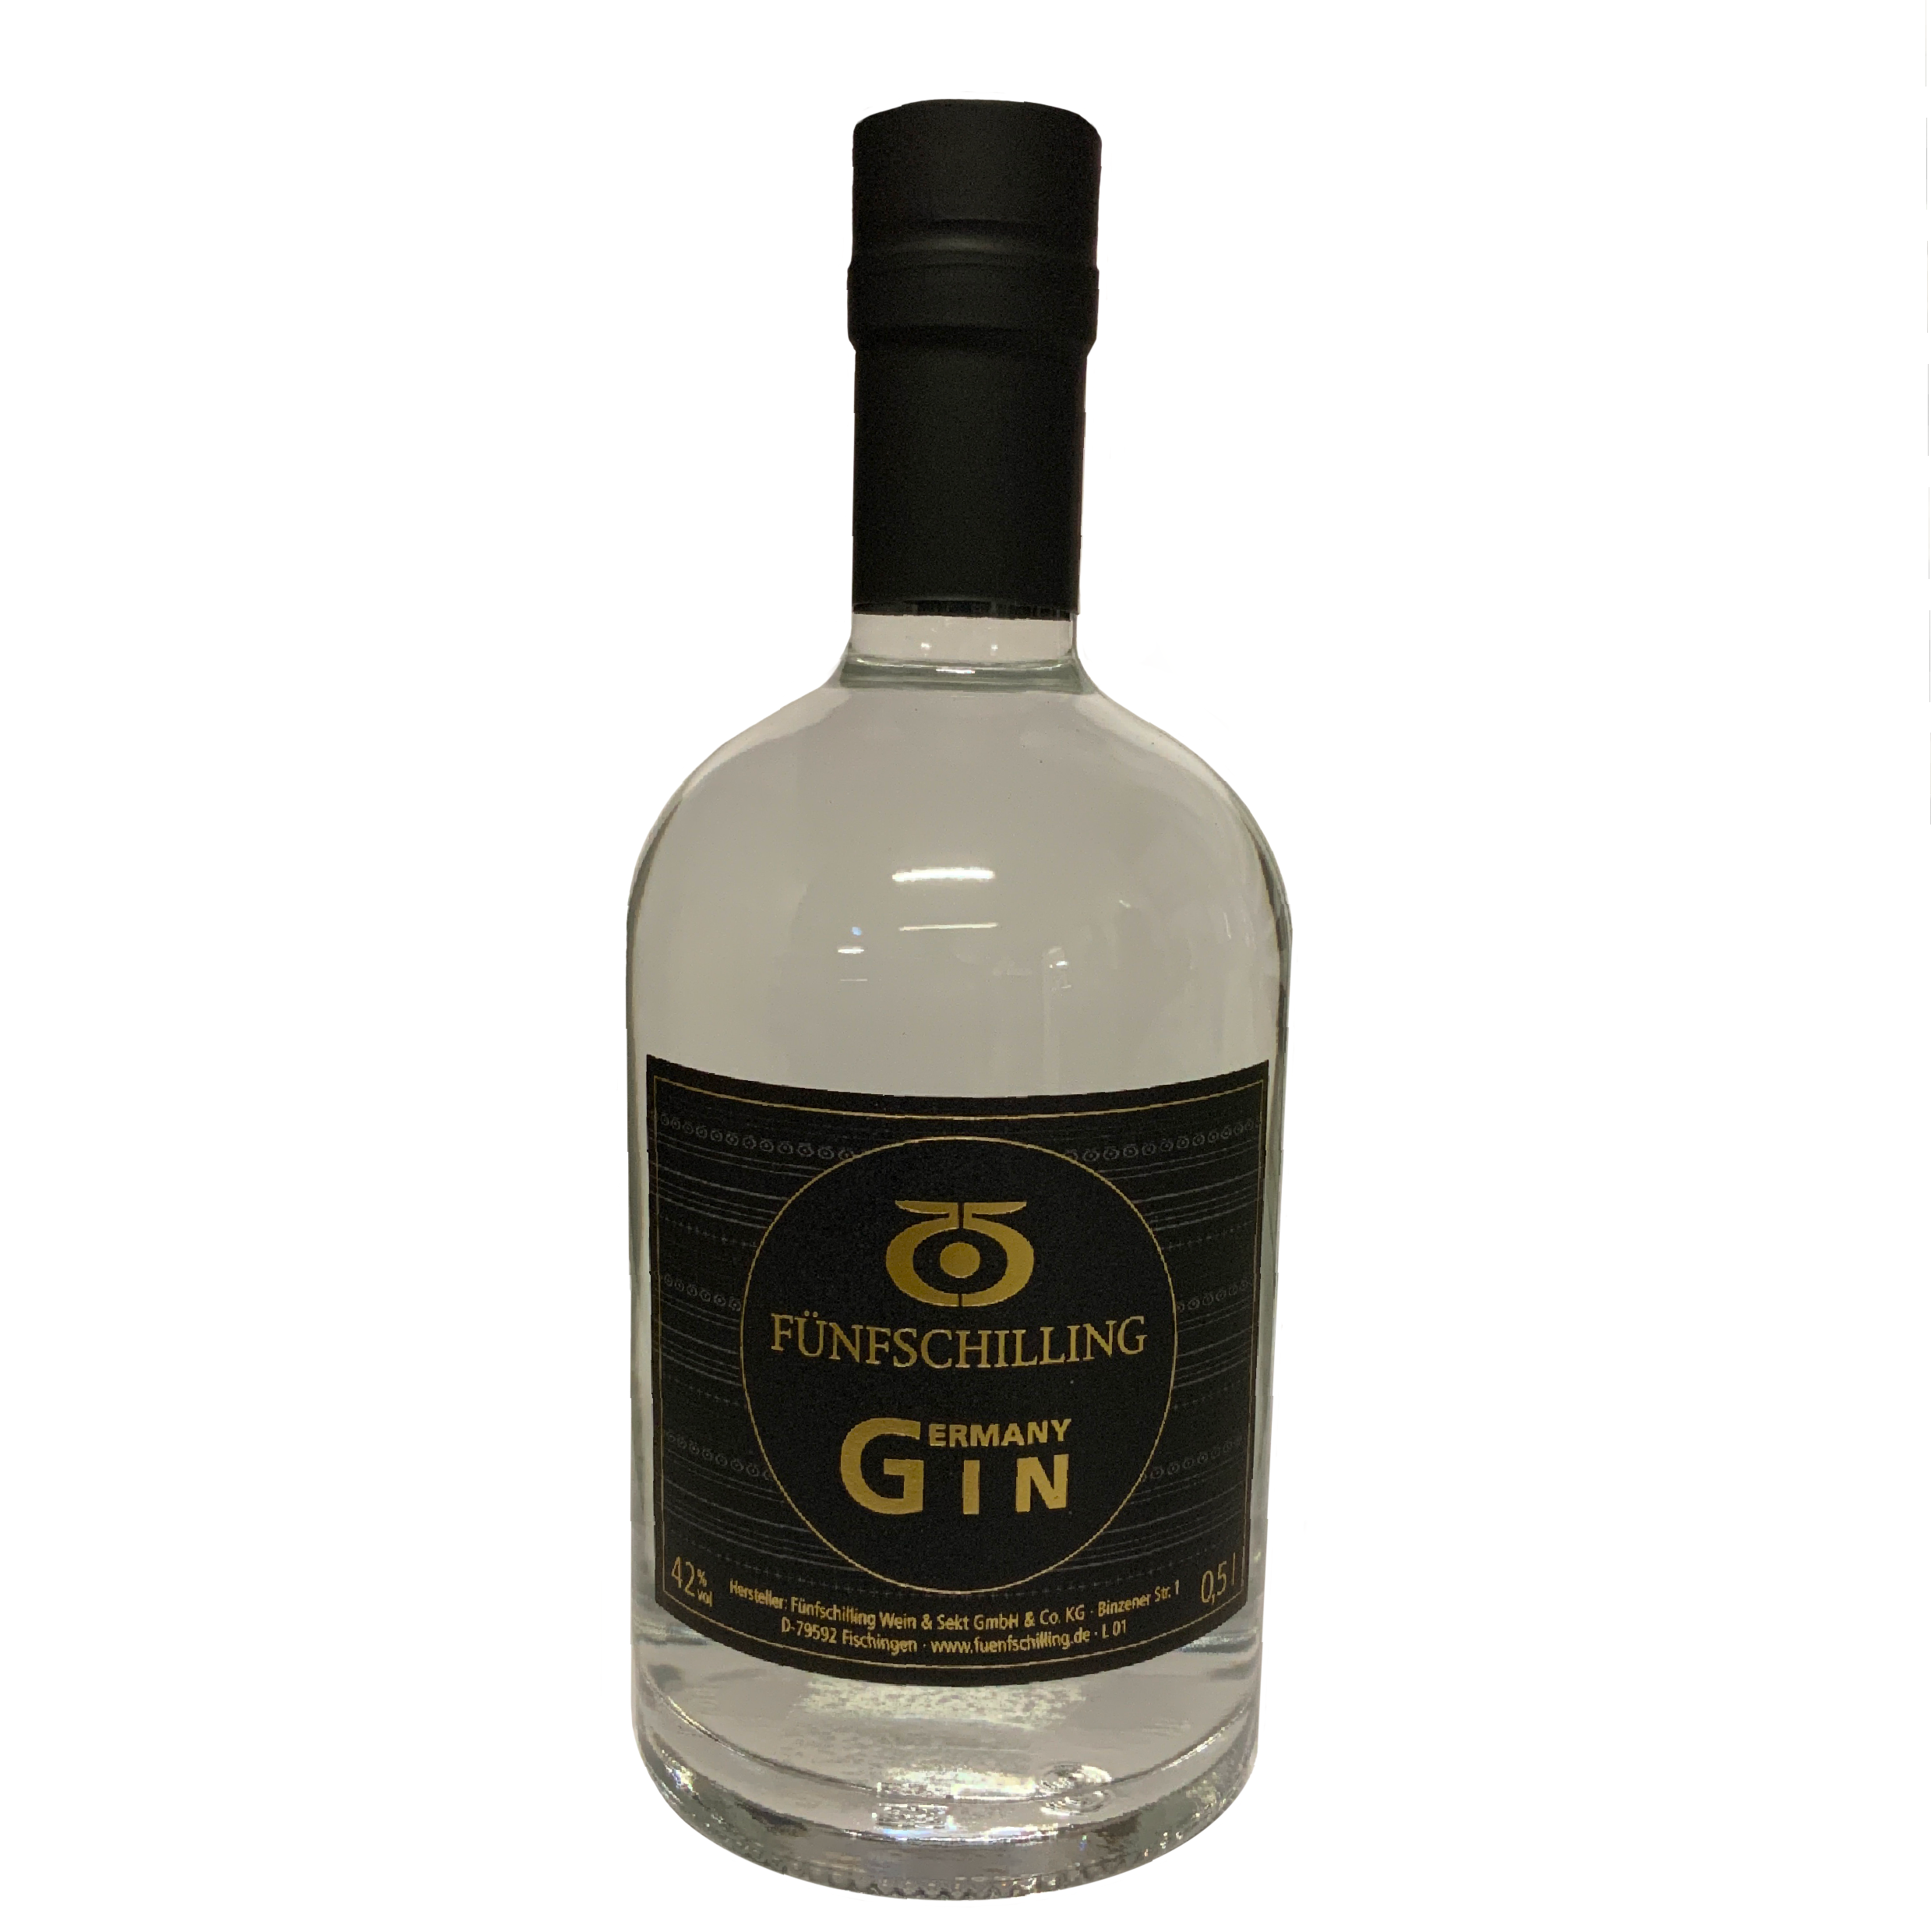 Fünfschilling Germany Gin